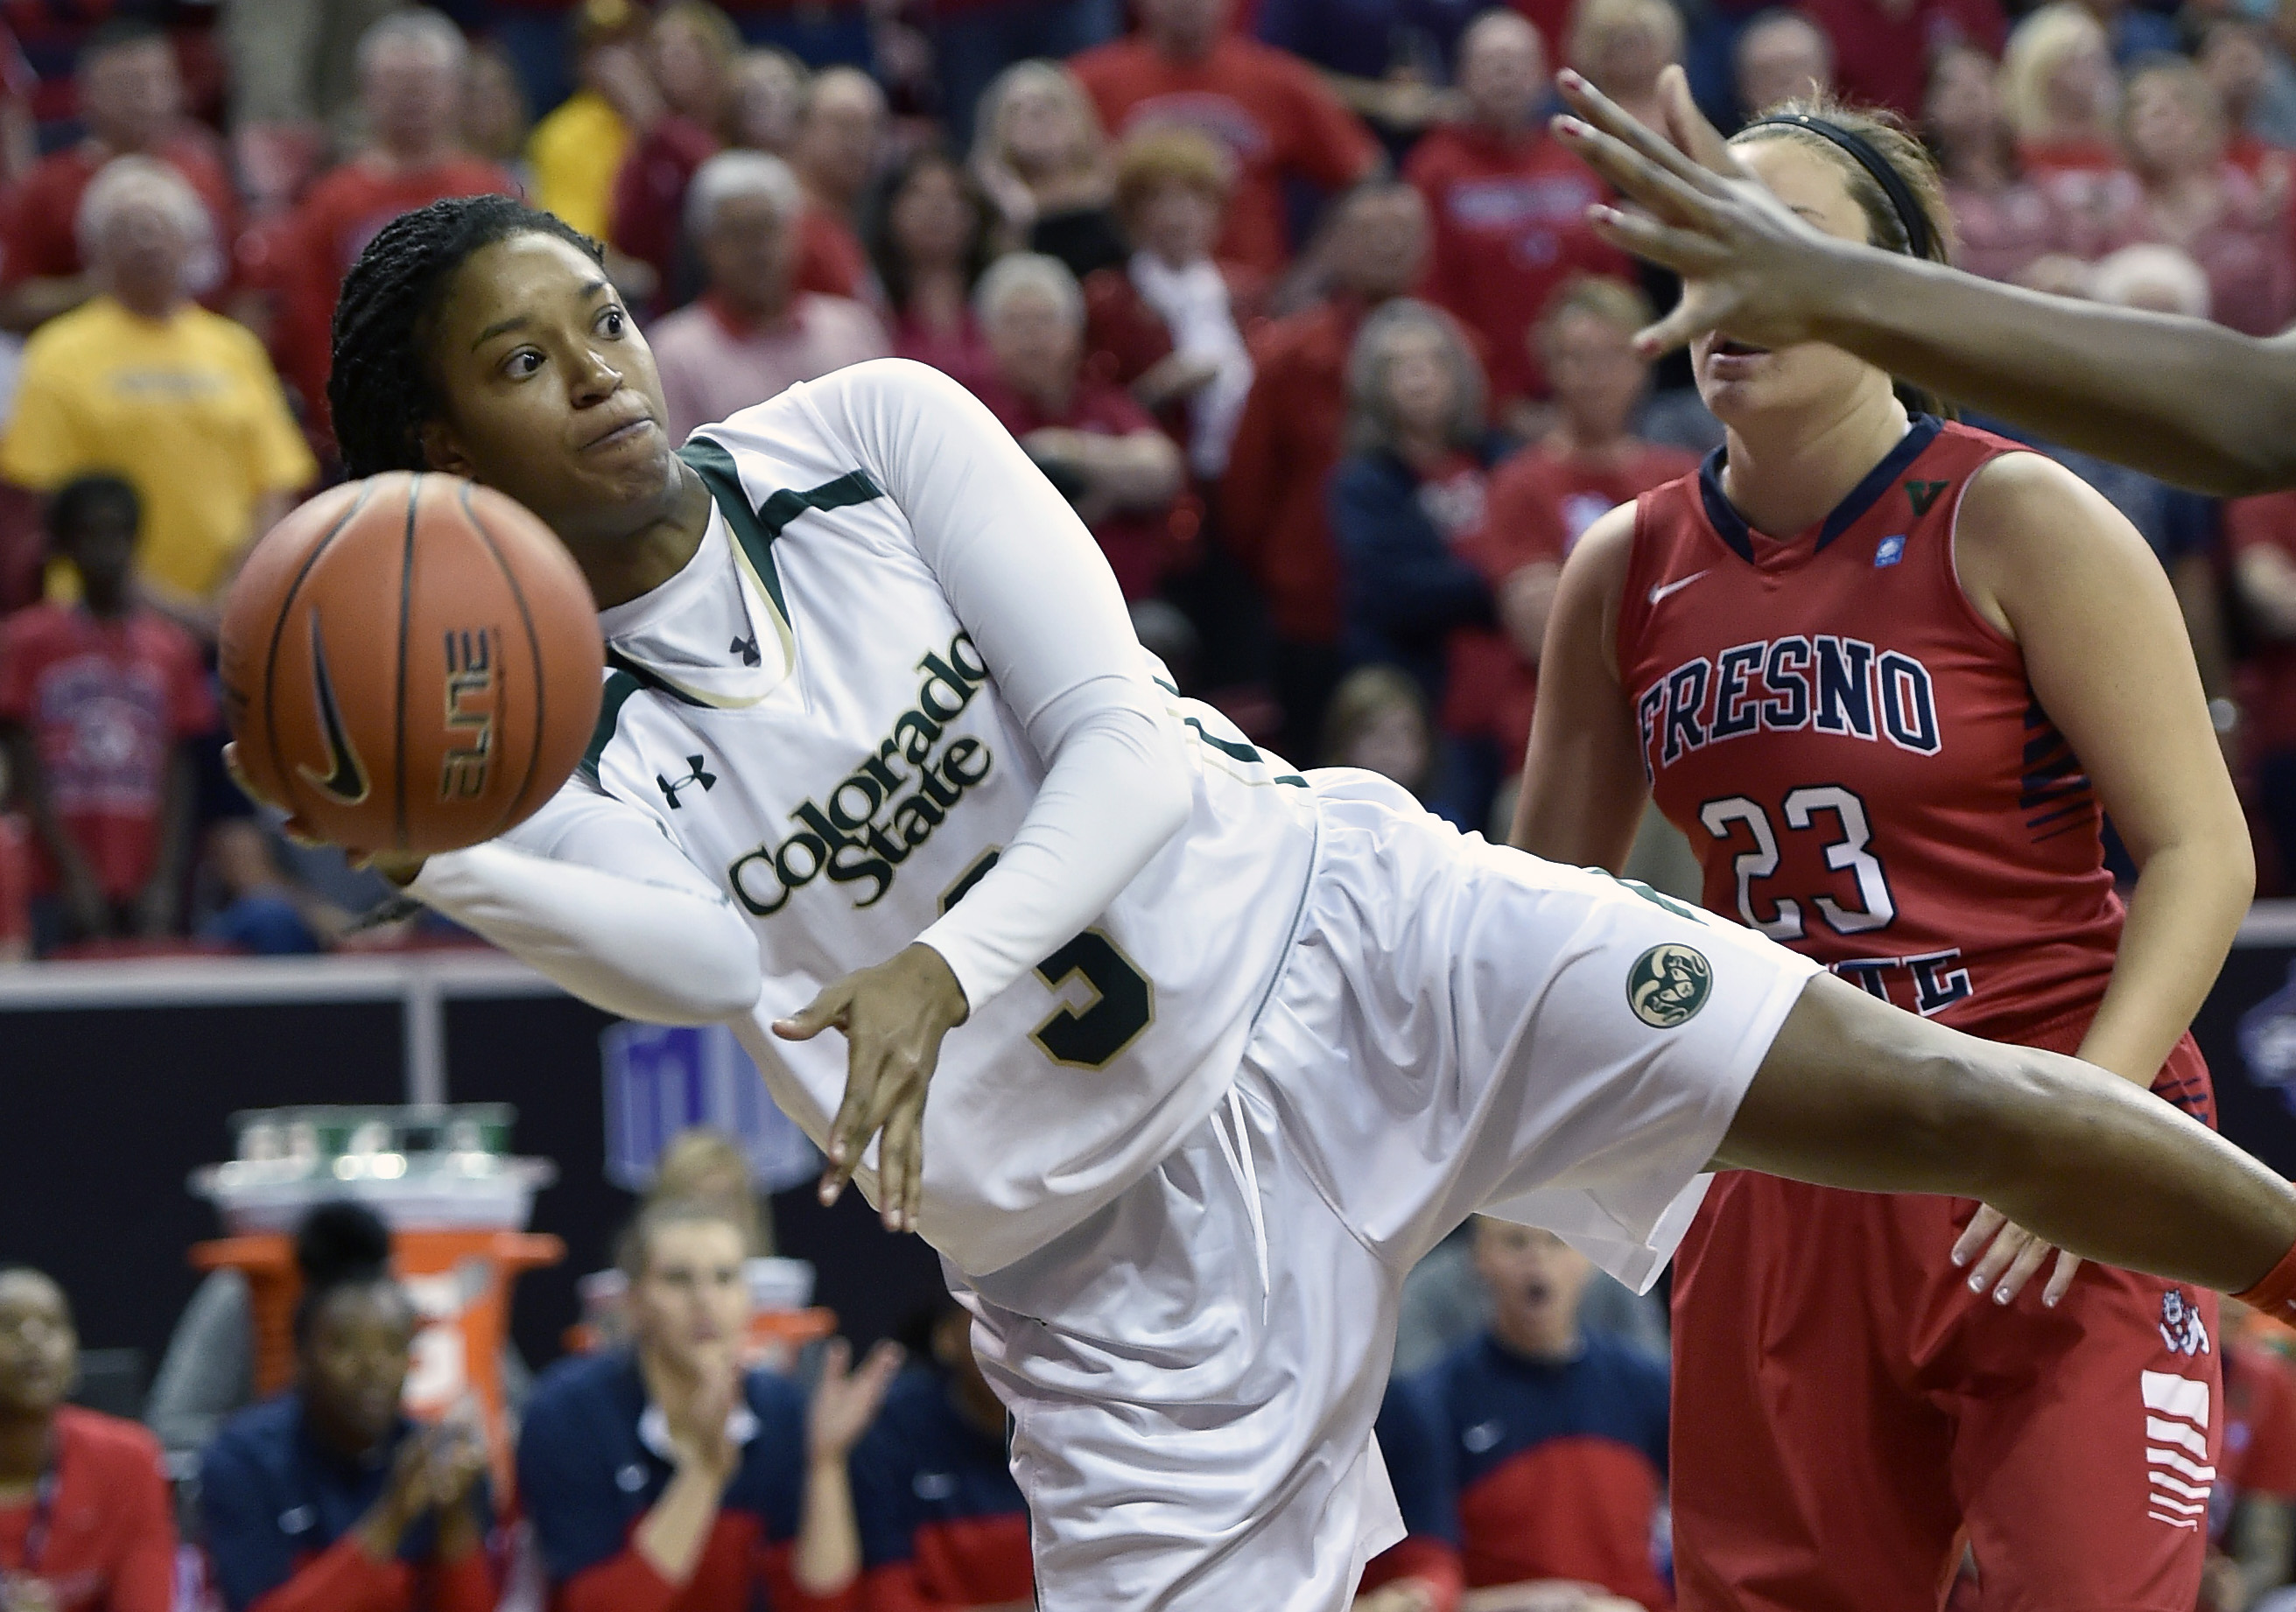 Colorado State's Keyora Wharry (3) looks to pass against Fresno State during the first half during the championship game at the NCAA Mountain West Conference women's tournament Friday, March 11, 2016, in Las Vegas. (AP Photo/David Becker)